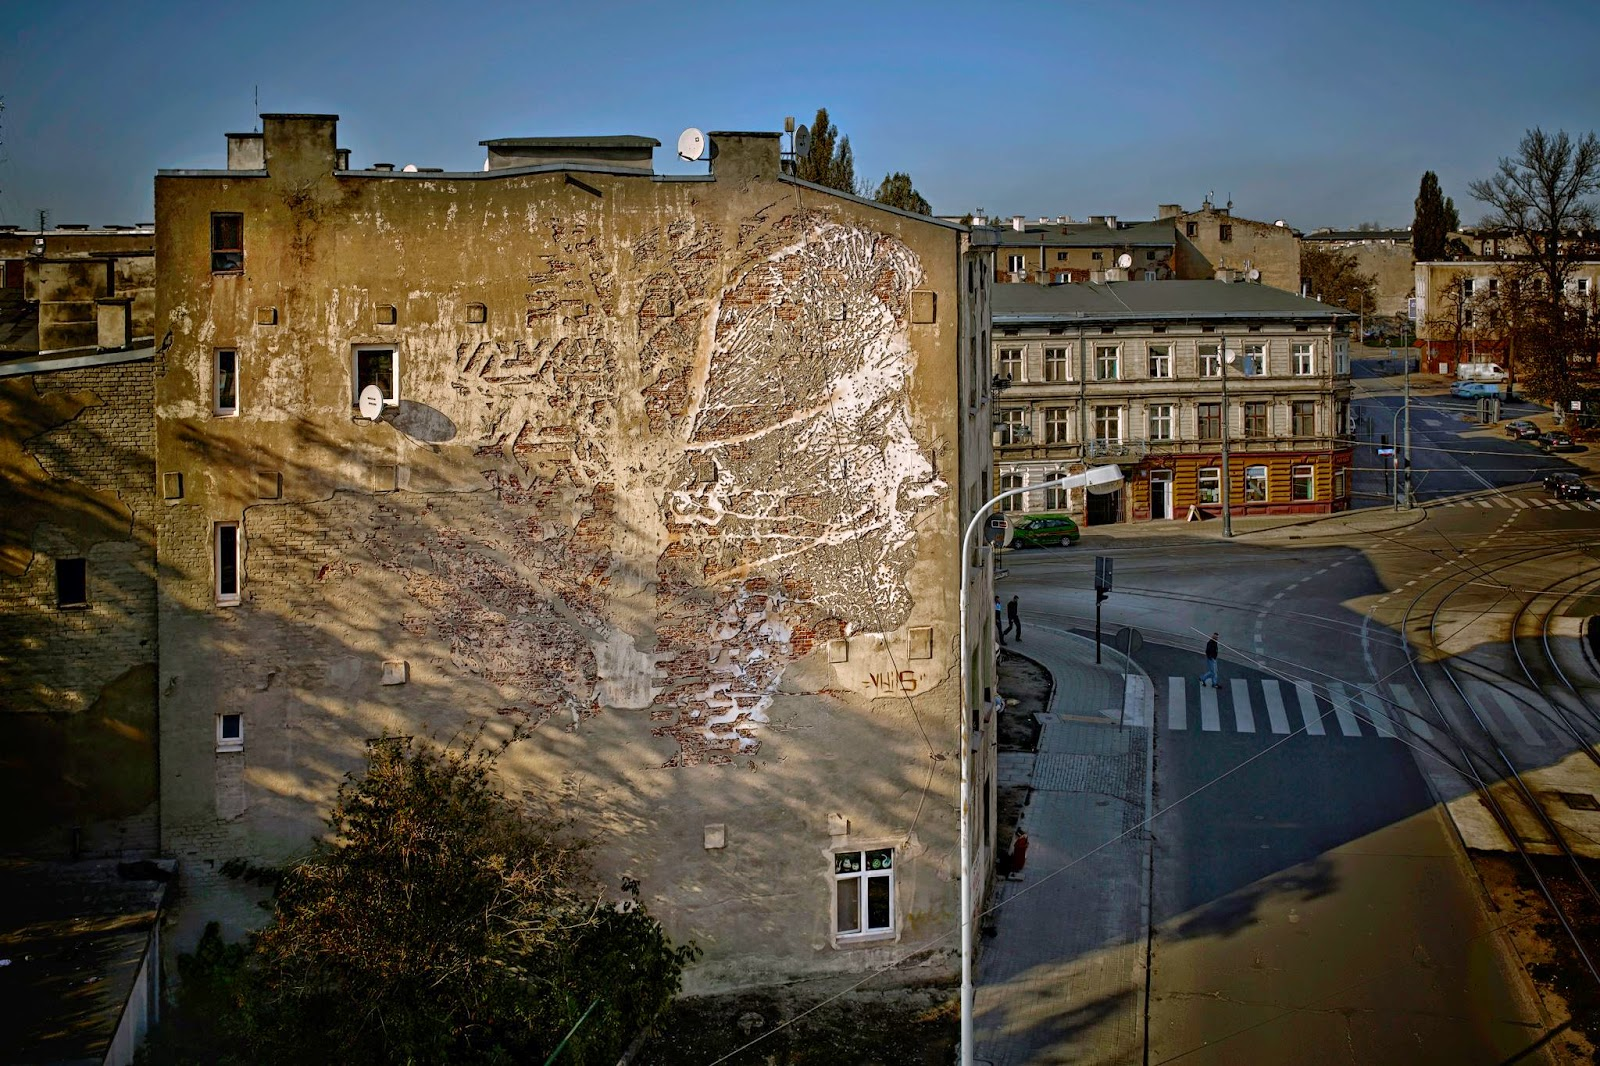 Portuguese street artist Vhils is part of this year's lineup of Urban Forms which is currently taking place on the streets of Lodz in Poland.